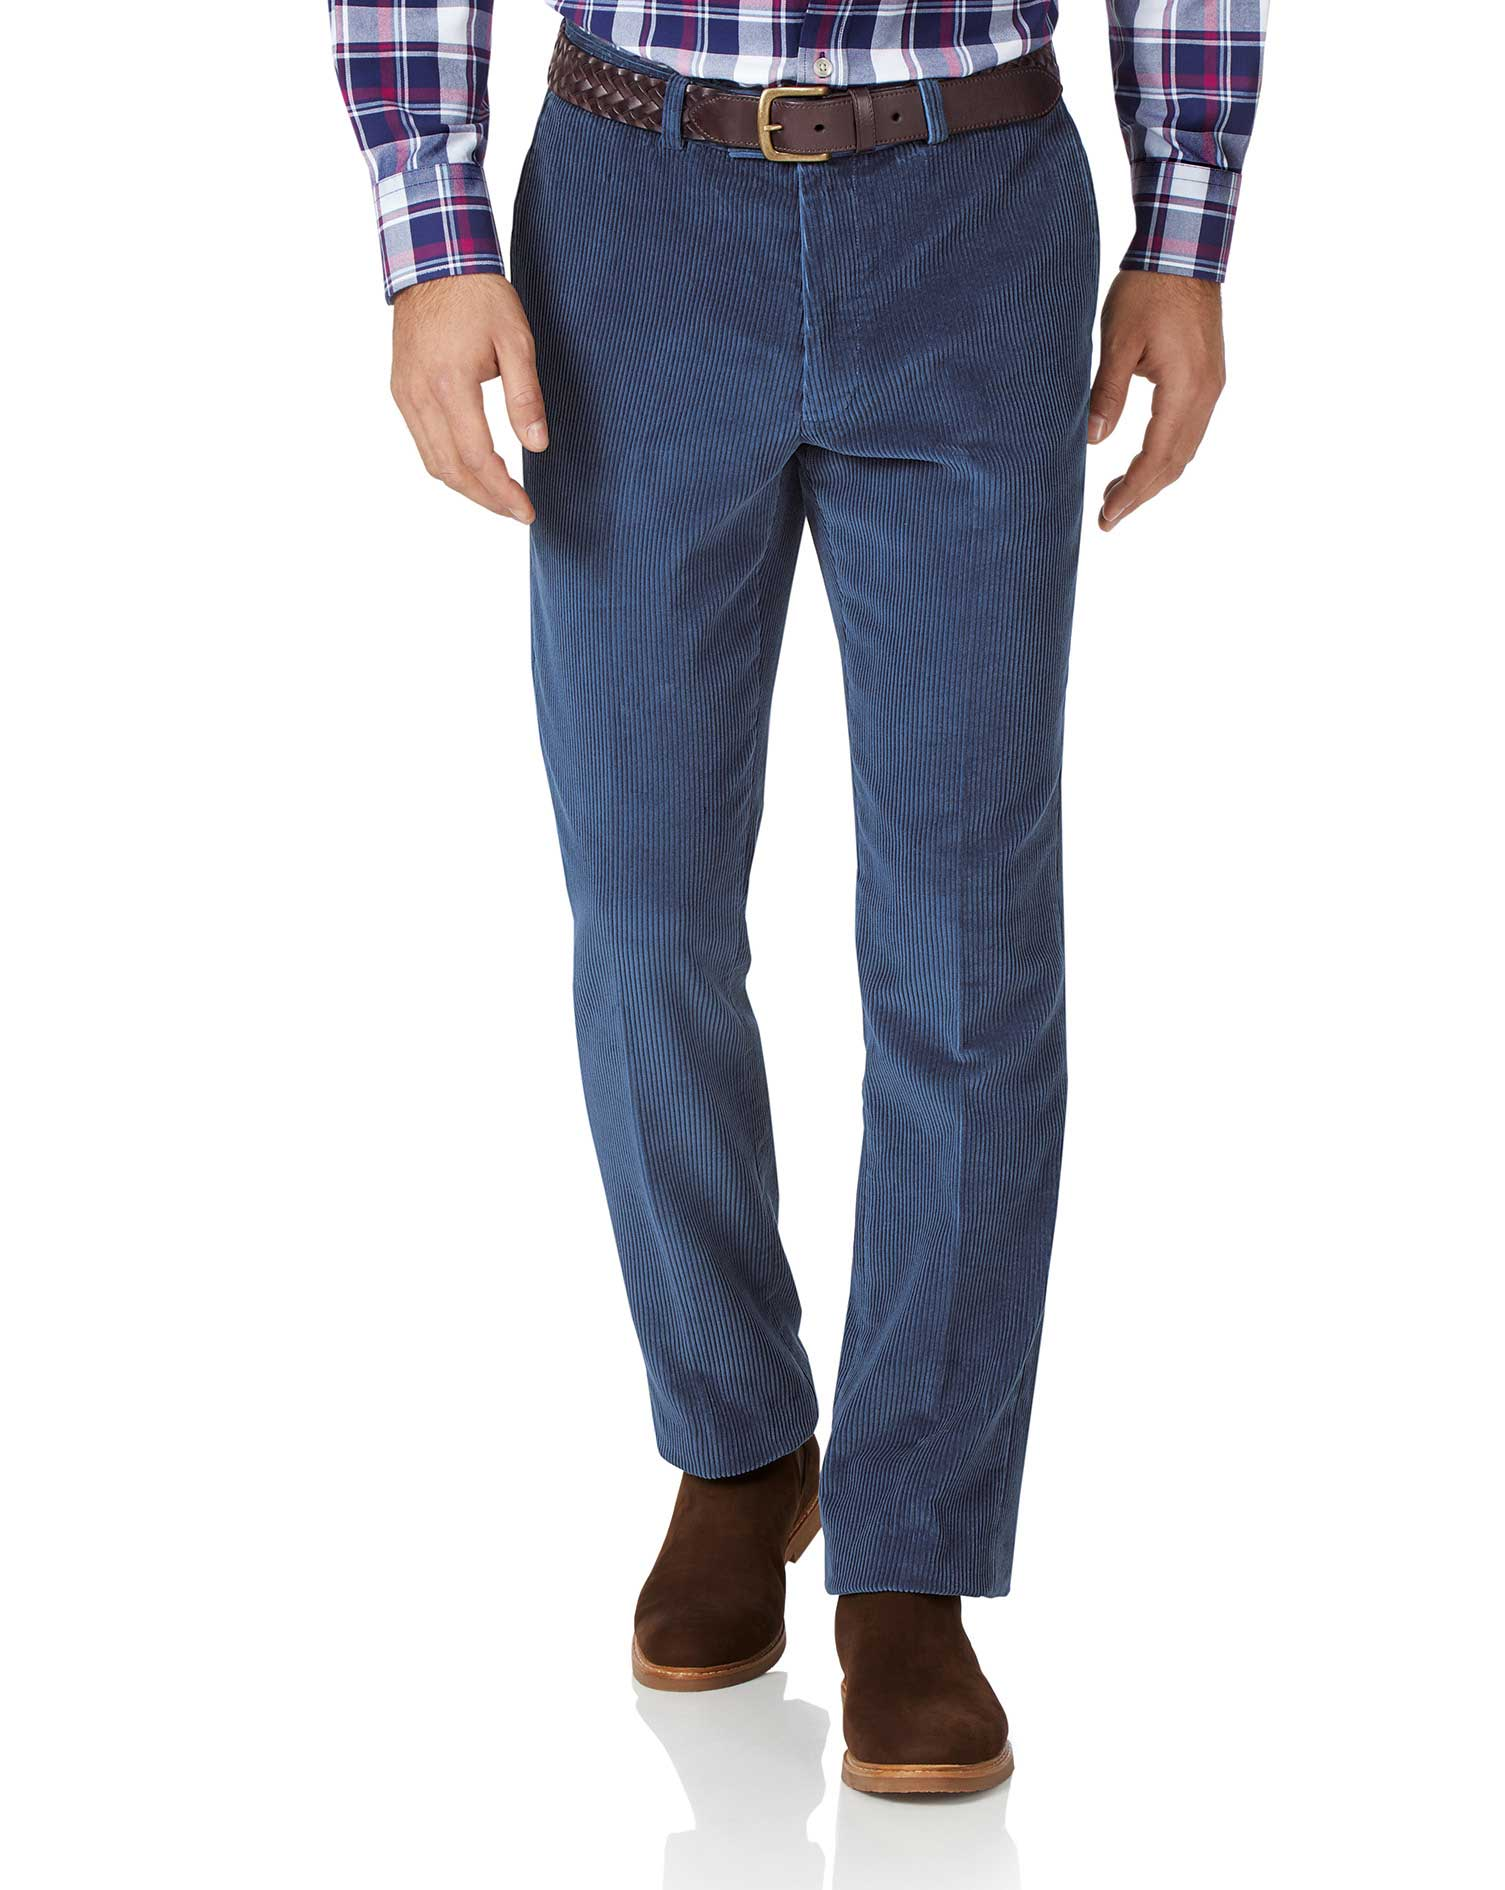 Airforce Blue Slim Fit Jumbo Corduroy Trousers Size W32 L30 by Charles Tyrwhitt